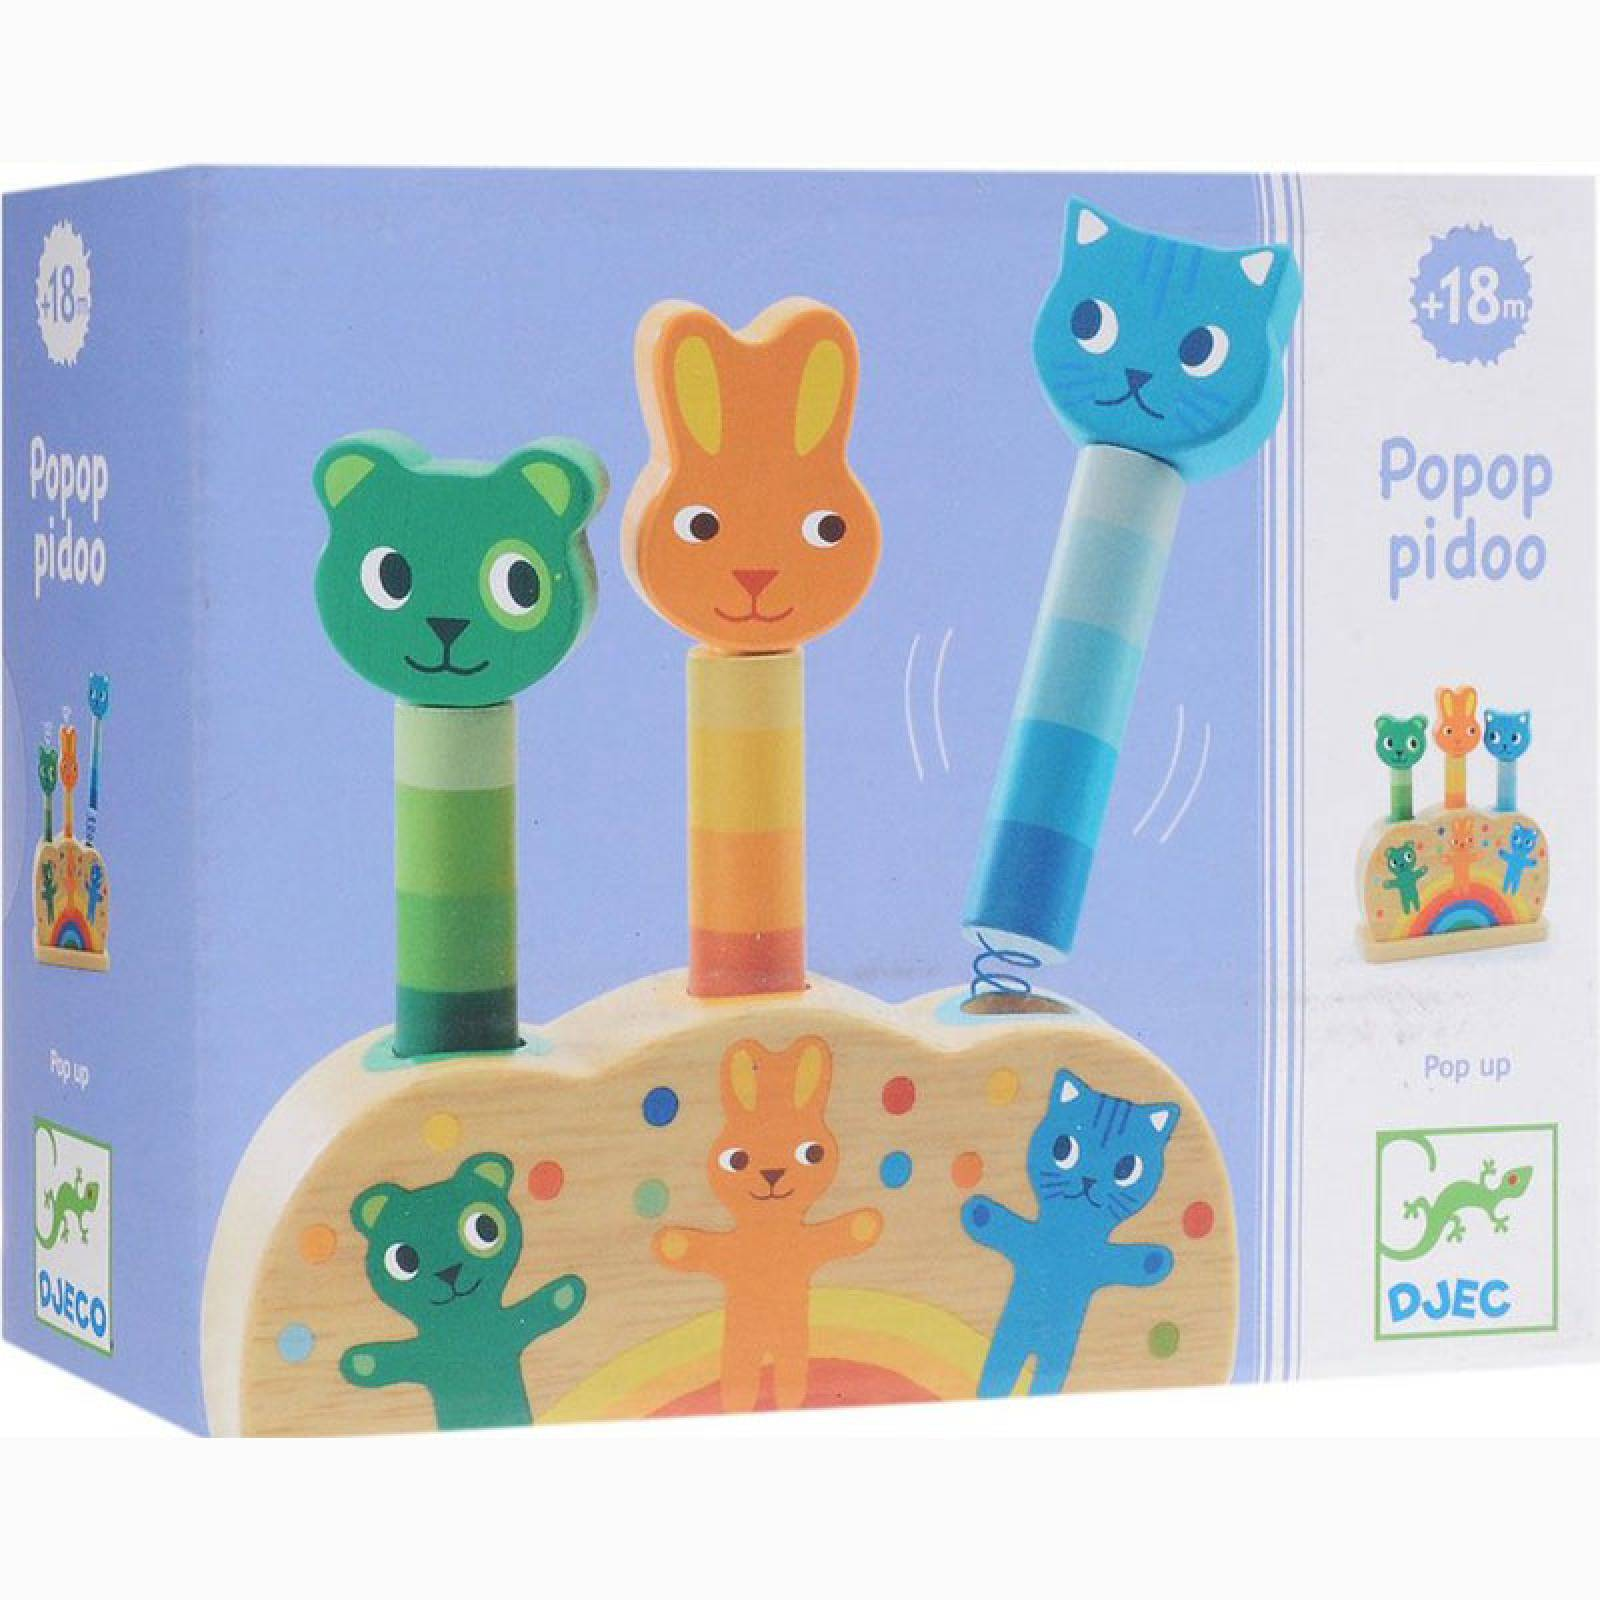 Popop Pidoo Wooden Pop Up Toy By Djeco 1+